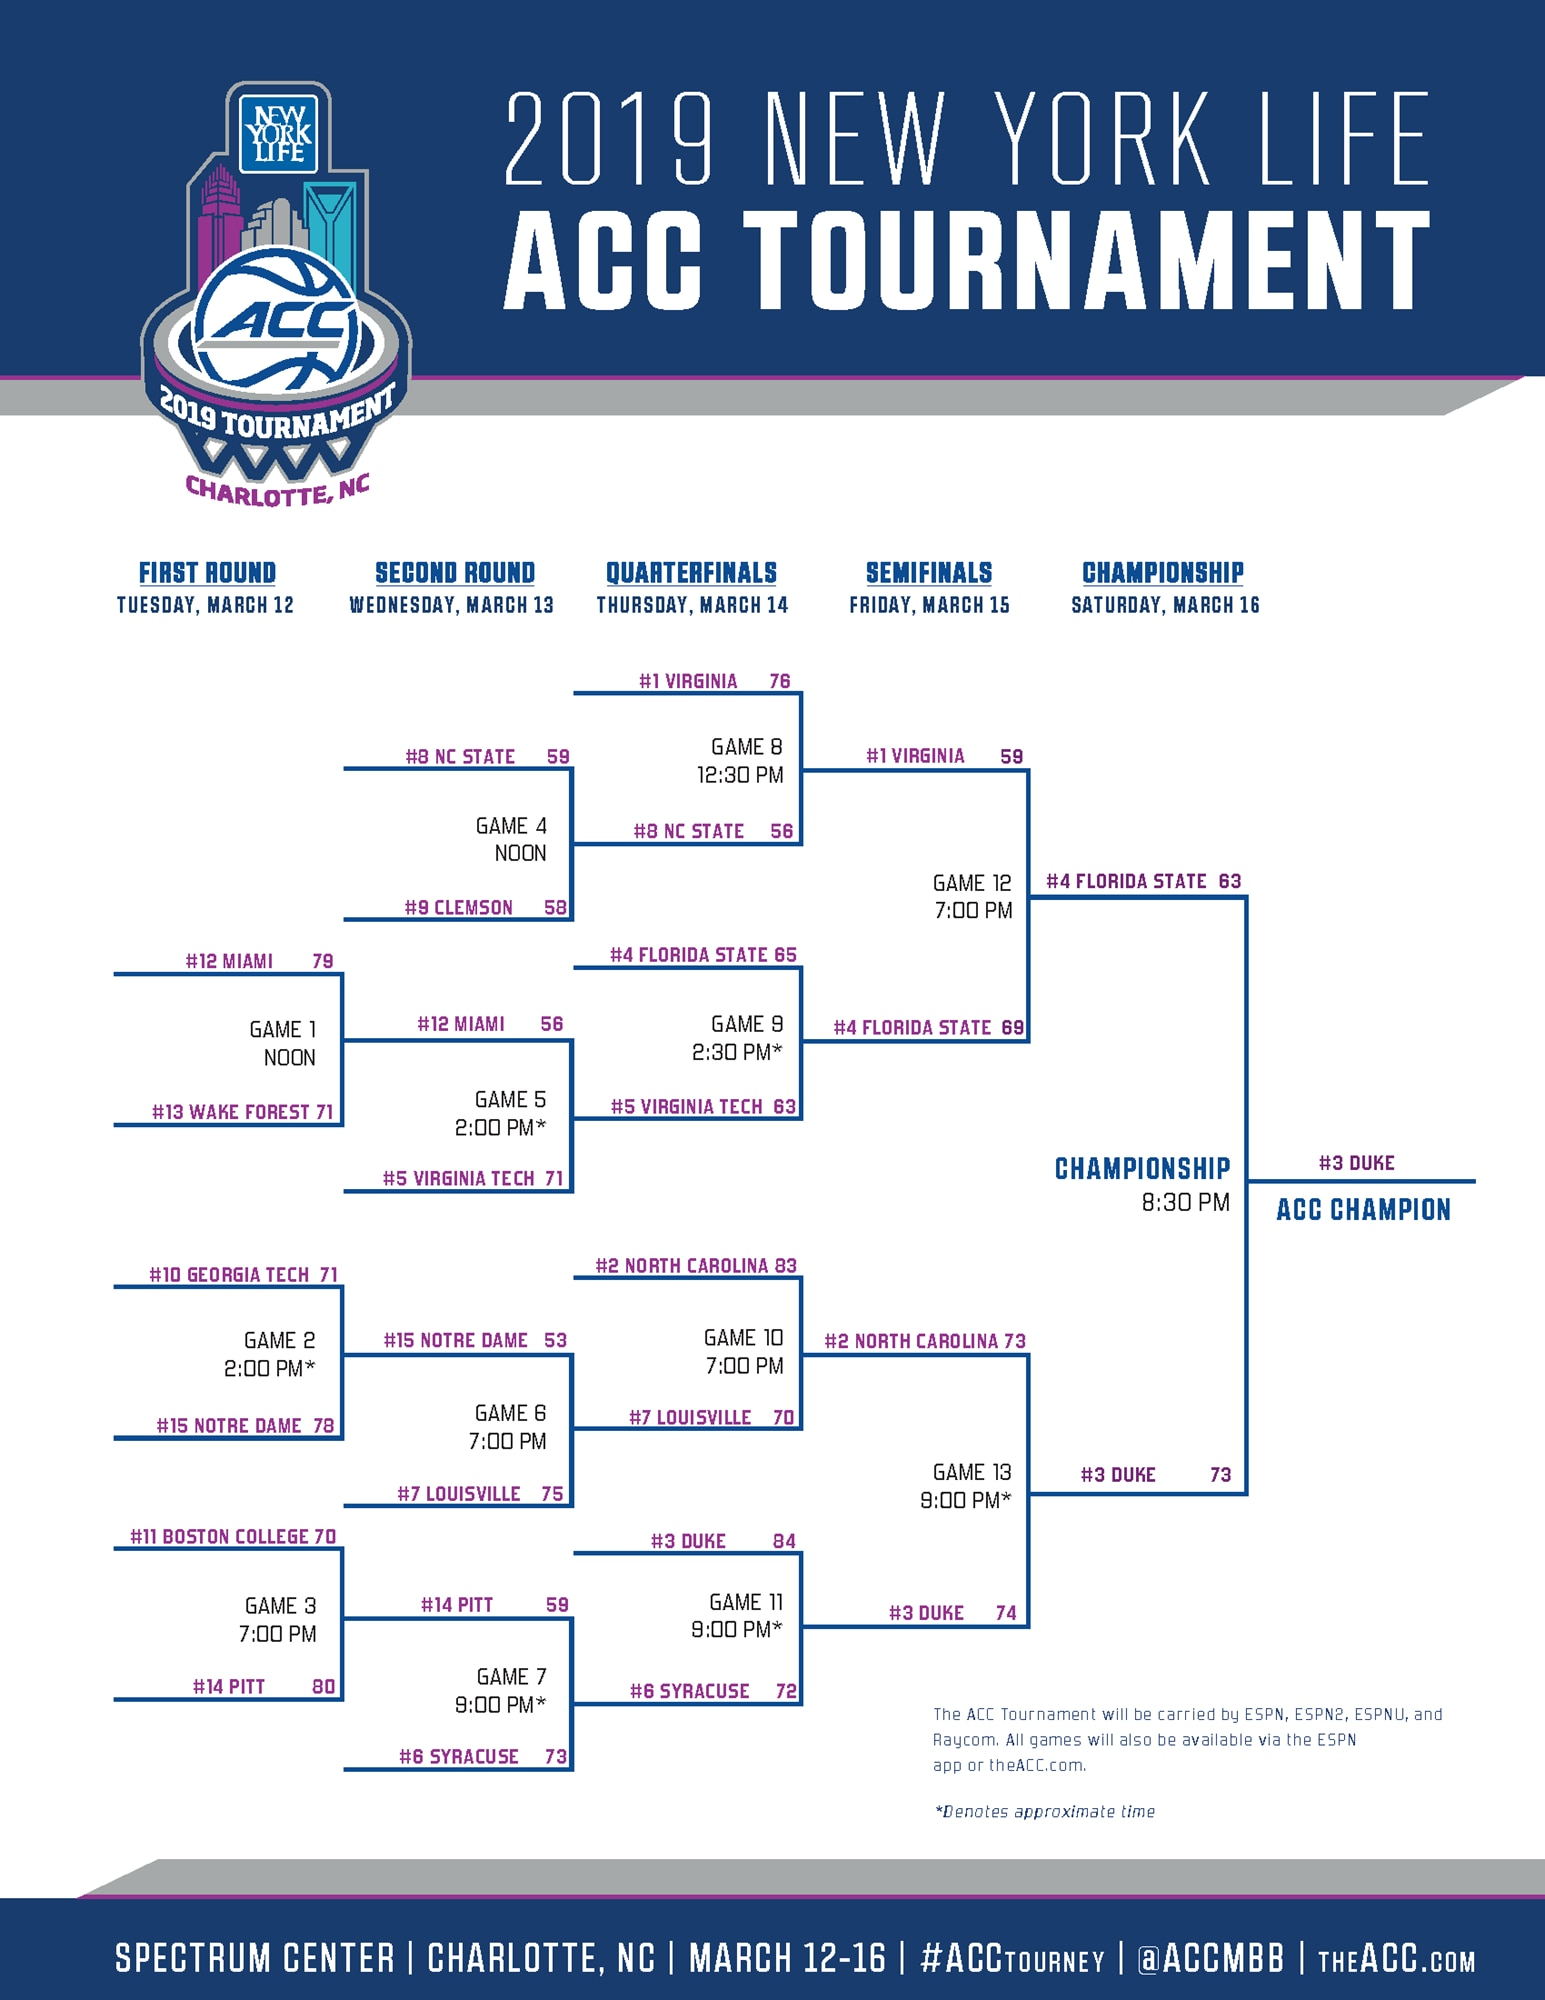 photo about Unc Basketball Schedule Printable named 2019 ACC Match: Bracket, plan, seeds